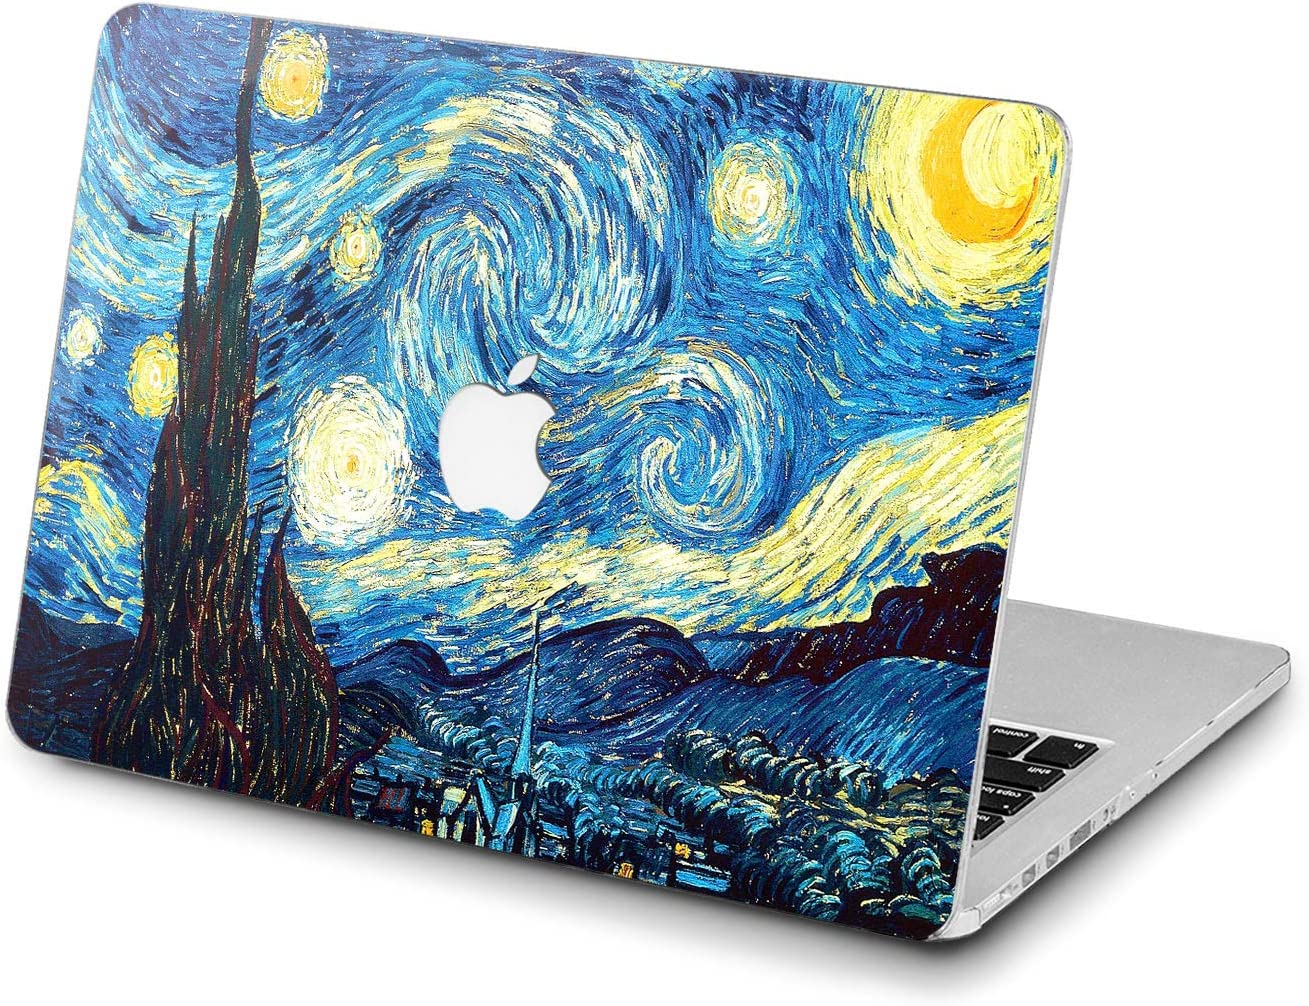 Lex Altern Hard Case for Apple MacBook Pro 15 Air 13 inch Mac Retina 12 11 2020 2019 2018 2017 2016 Girl Laptop Design Painting Touch Bar Starry Night Blue Cover Protective Women Van Gogh Artwork